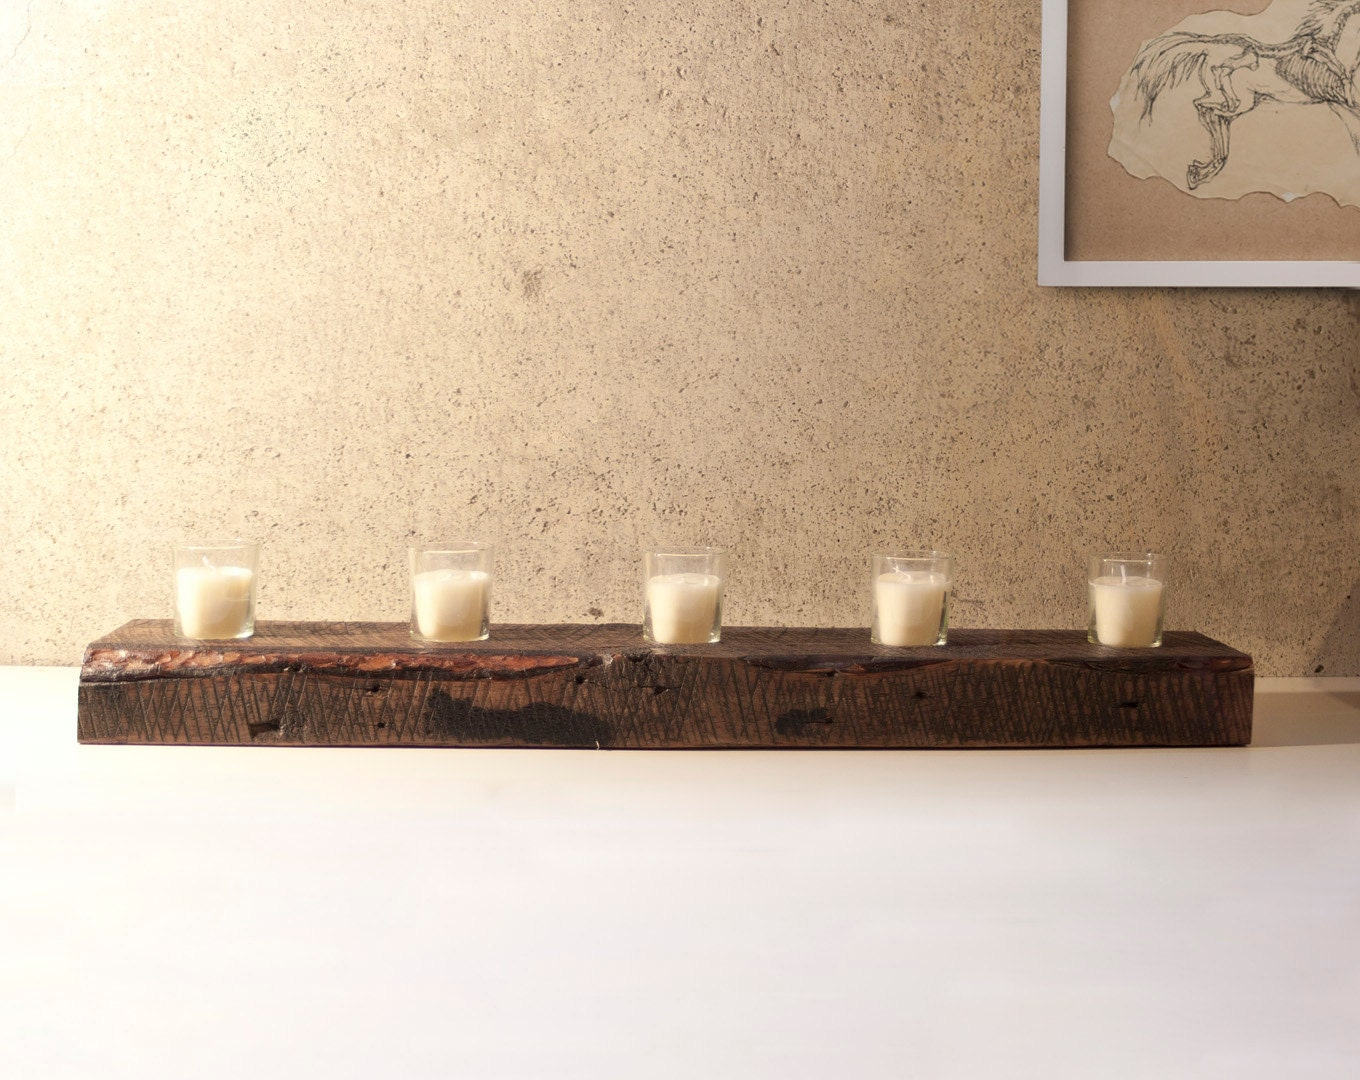 ... Reclaimed Wood Votive Candle Holder. 🔎zoom - FREE SHIPPING Reclaimed Wood Votive Candle Holder